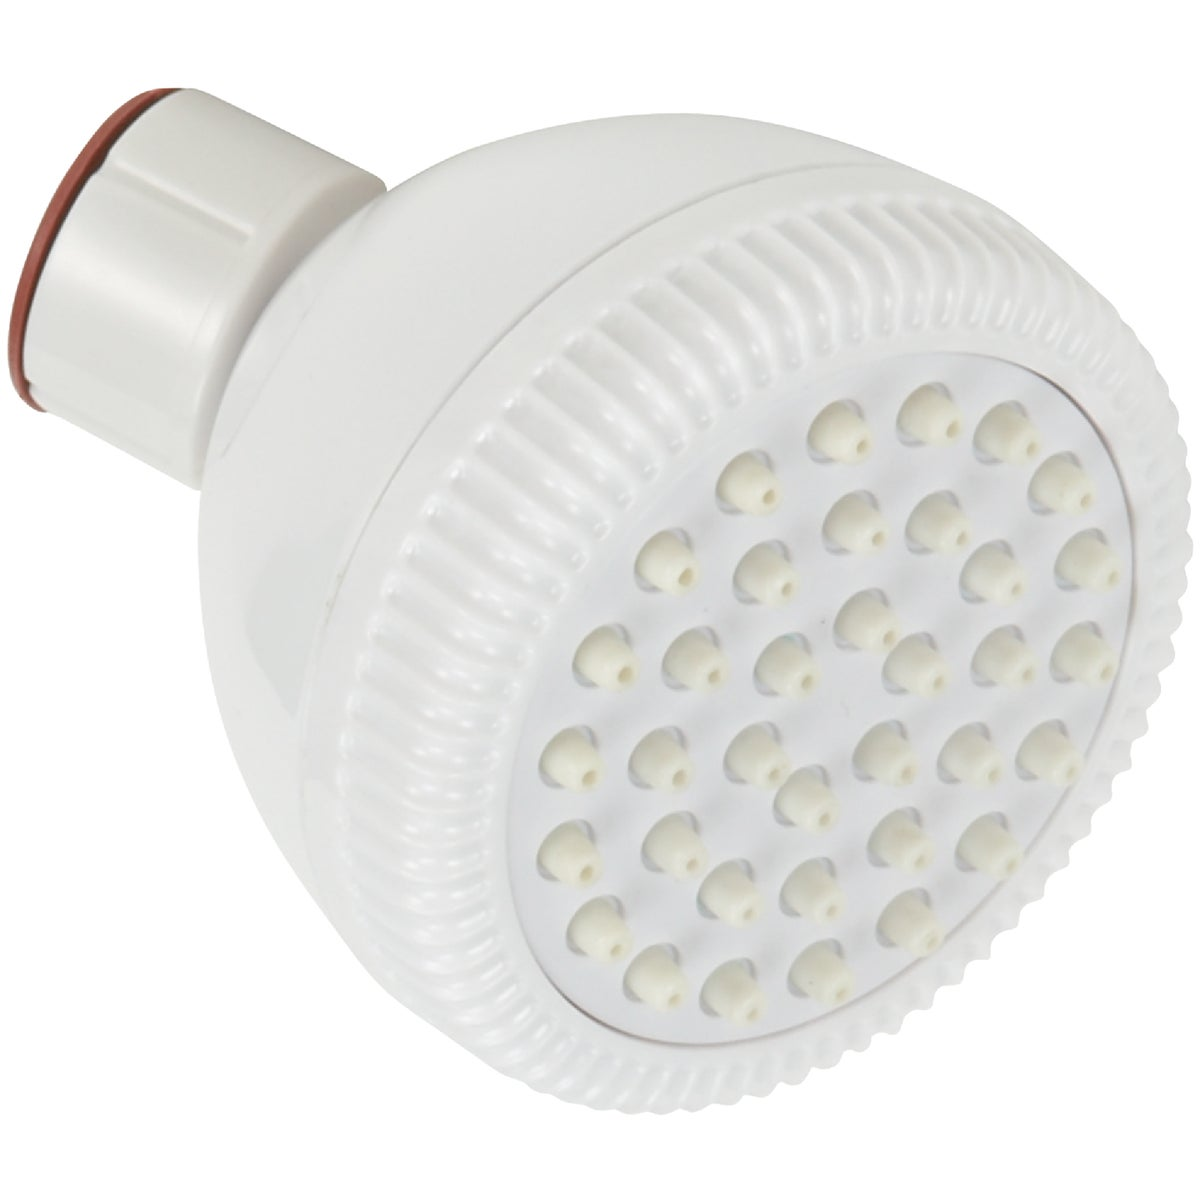 WHT 1-SET SHOWERHEAD